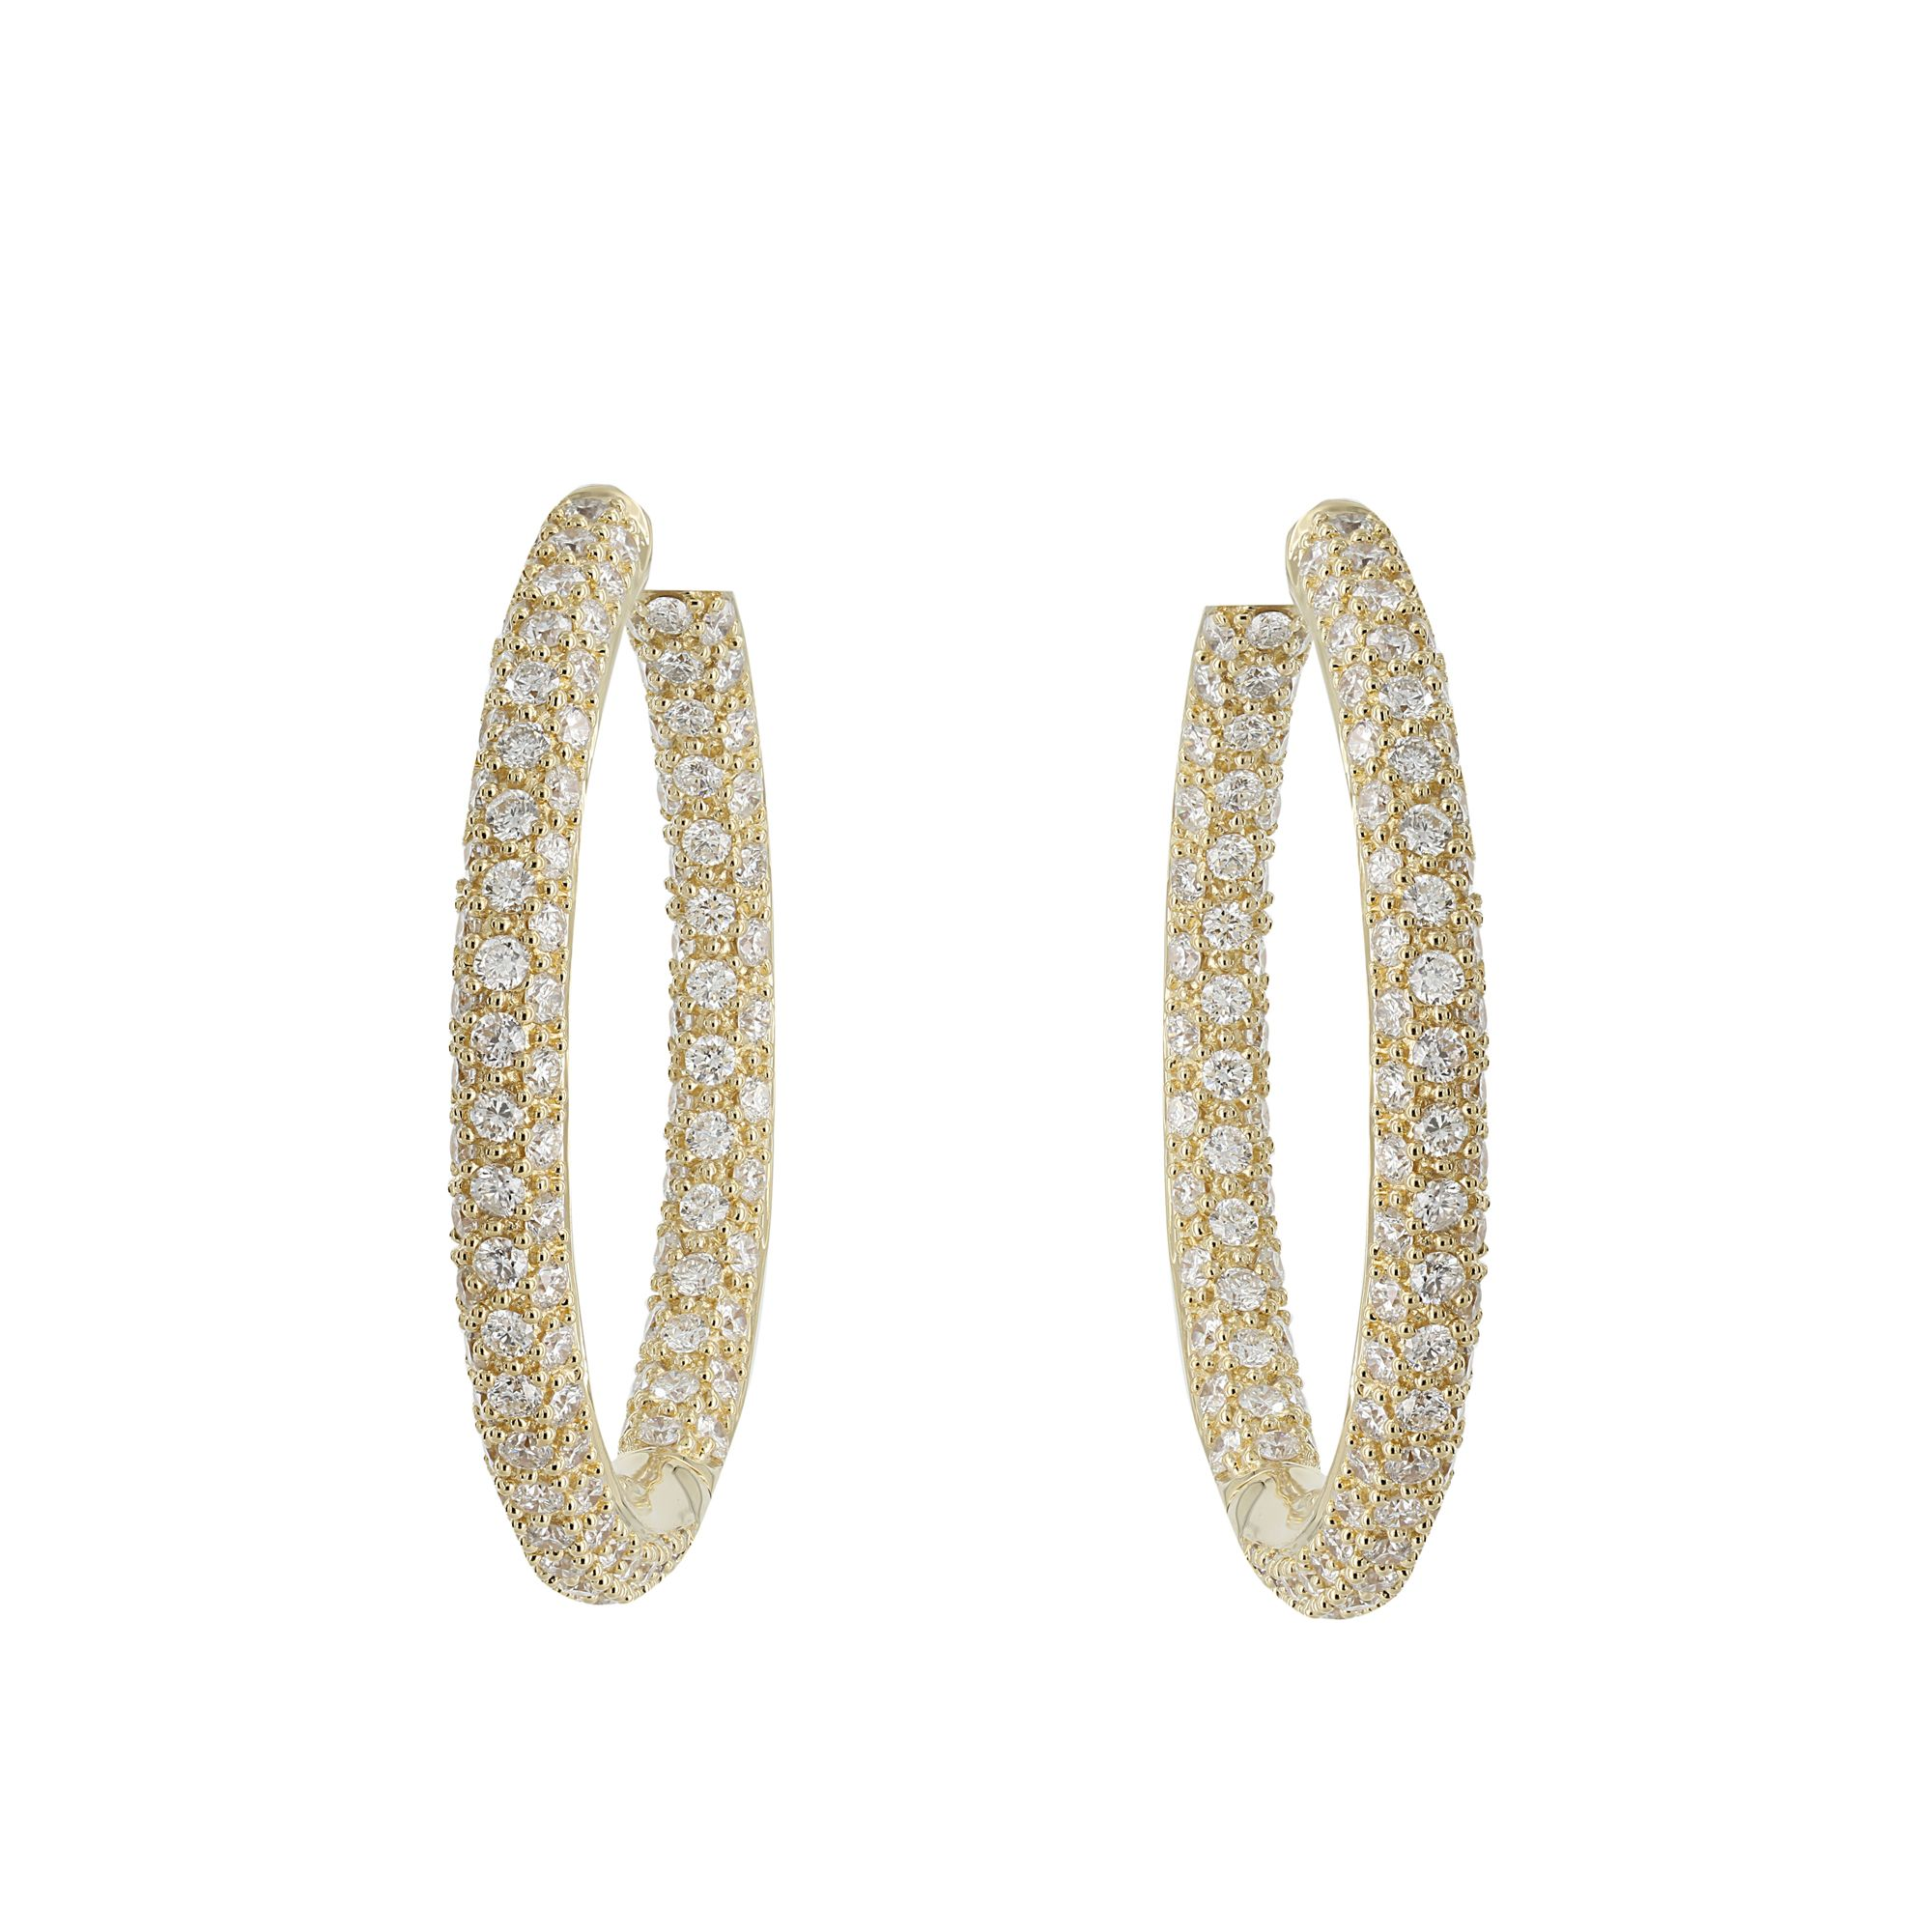 London Collection 18k Yellow Gold Pave Diamond Hoop Earrings With 3 96cts